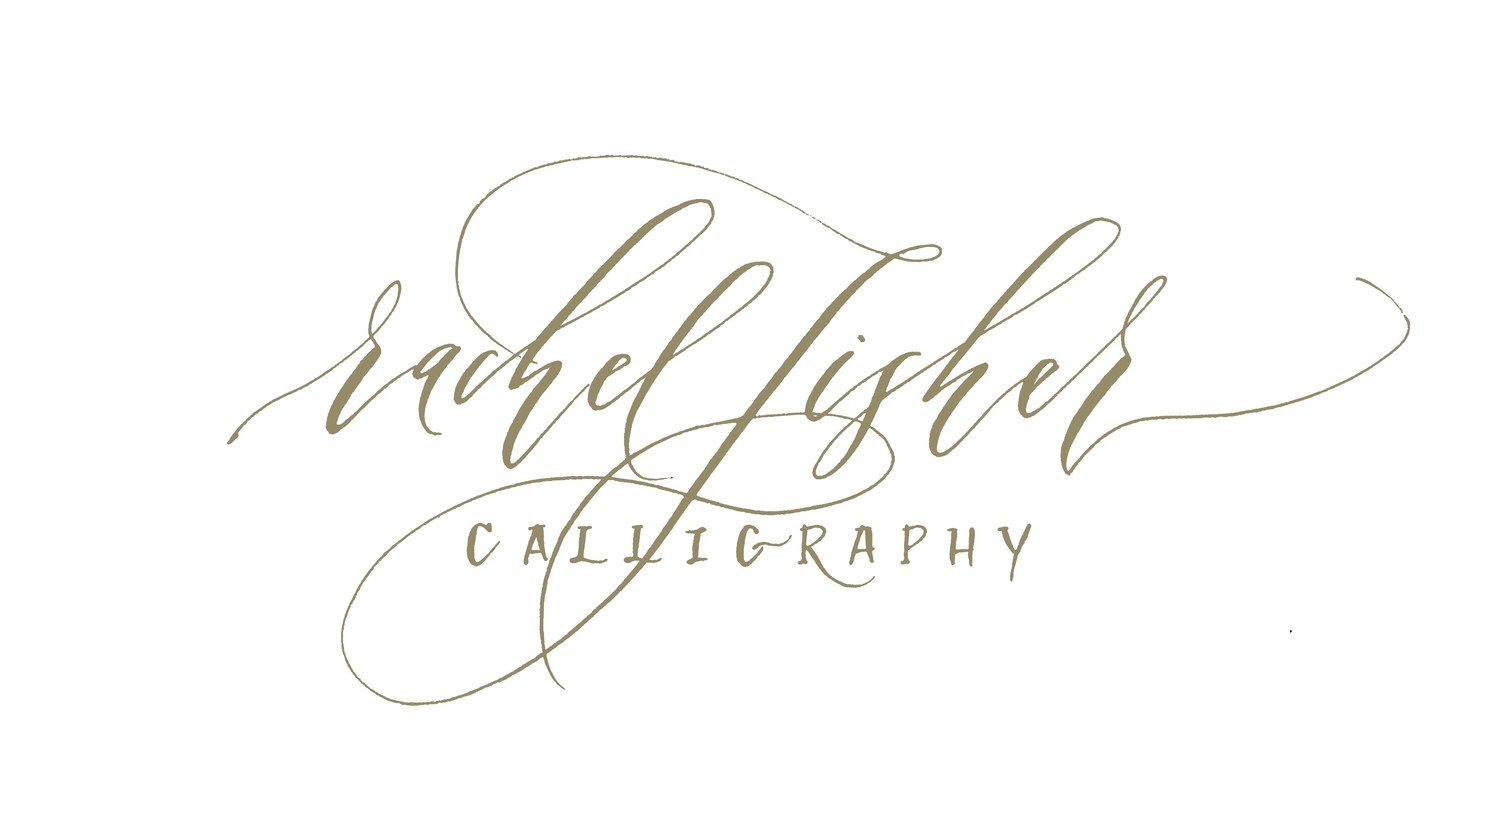 Rachel Fisher Calligraphy